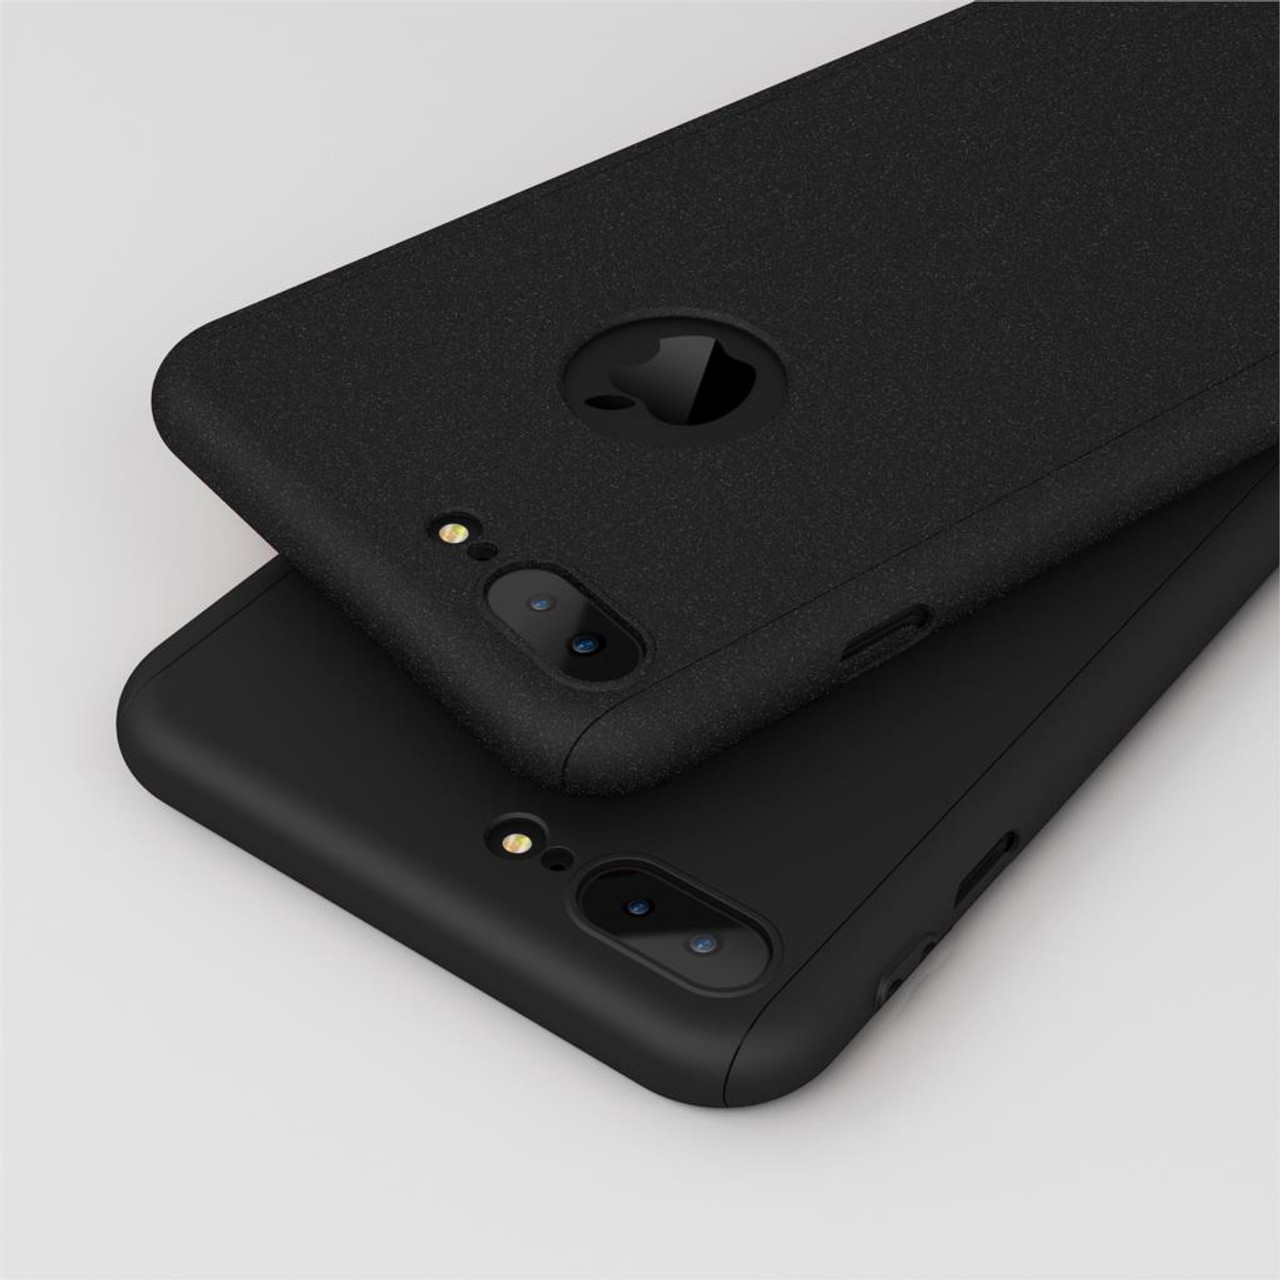 promo code a283e d24c2 Roybens For iPhone 7 Case Luxury Full Body Case For iPhone 6 6S 7 Plus Hard  PC 360 Degree Temper Glass Screen Protector Cover